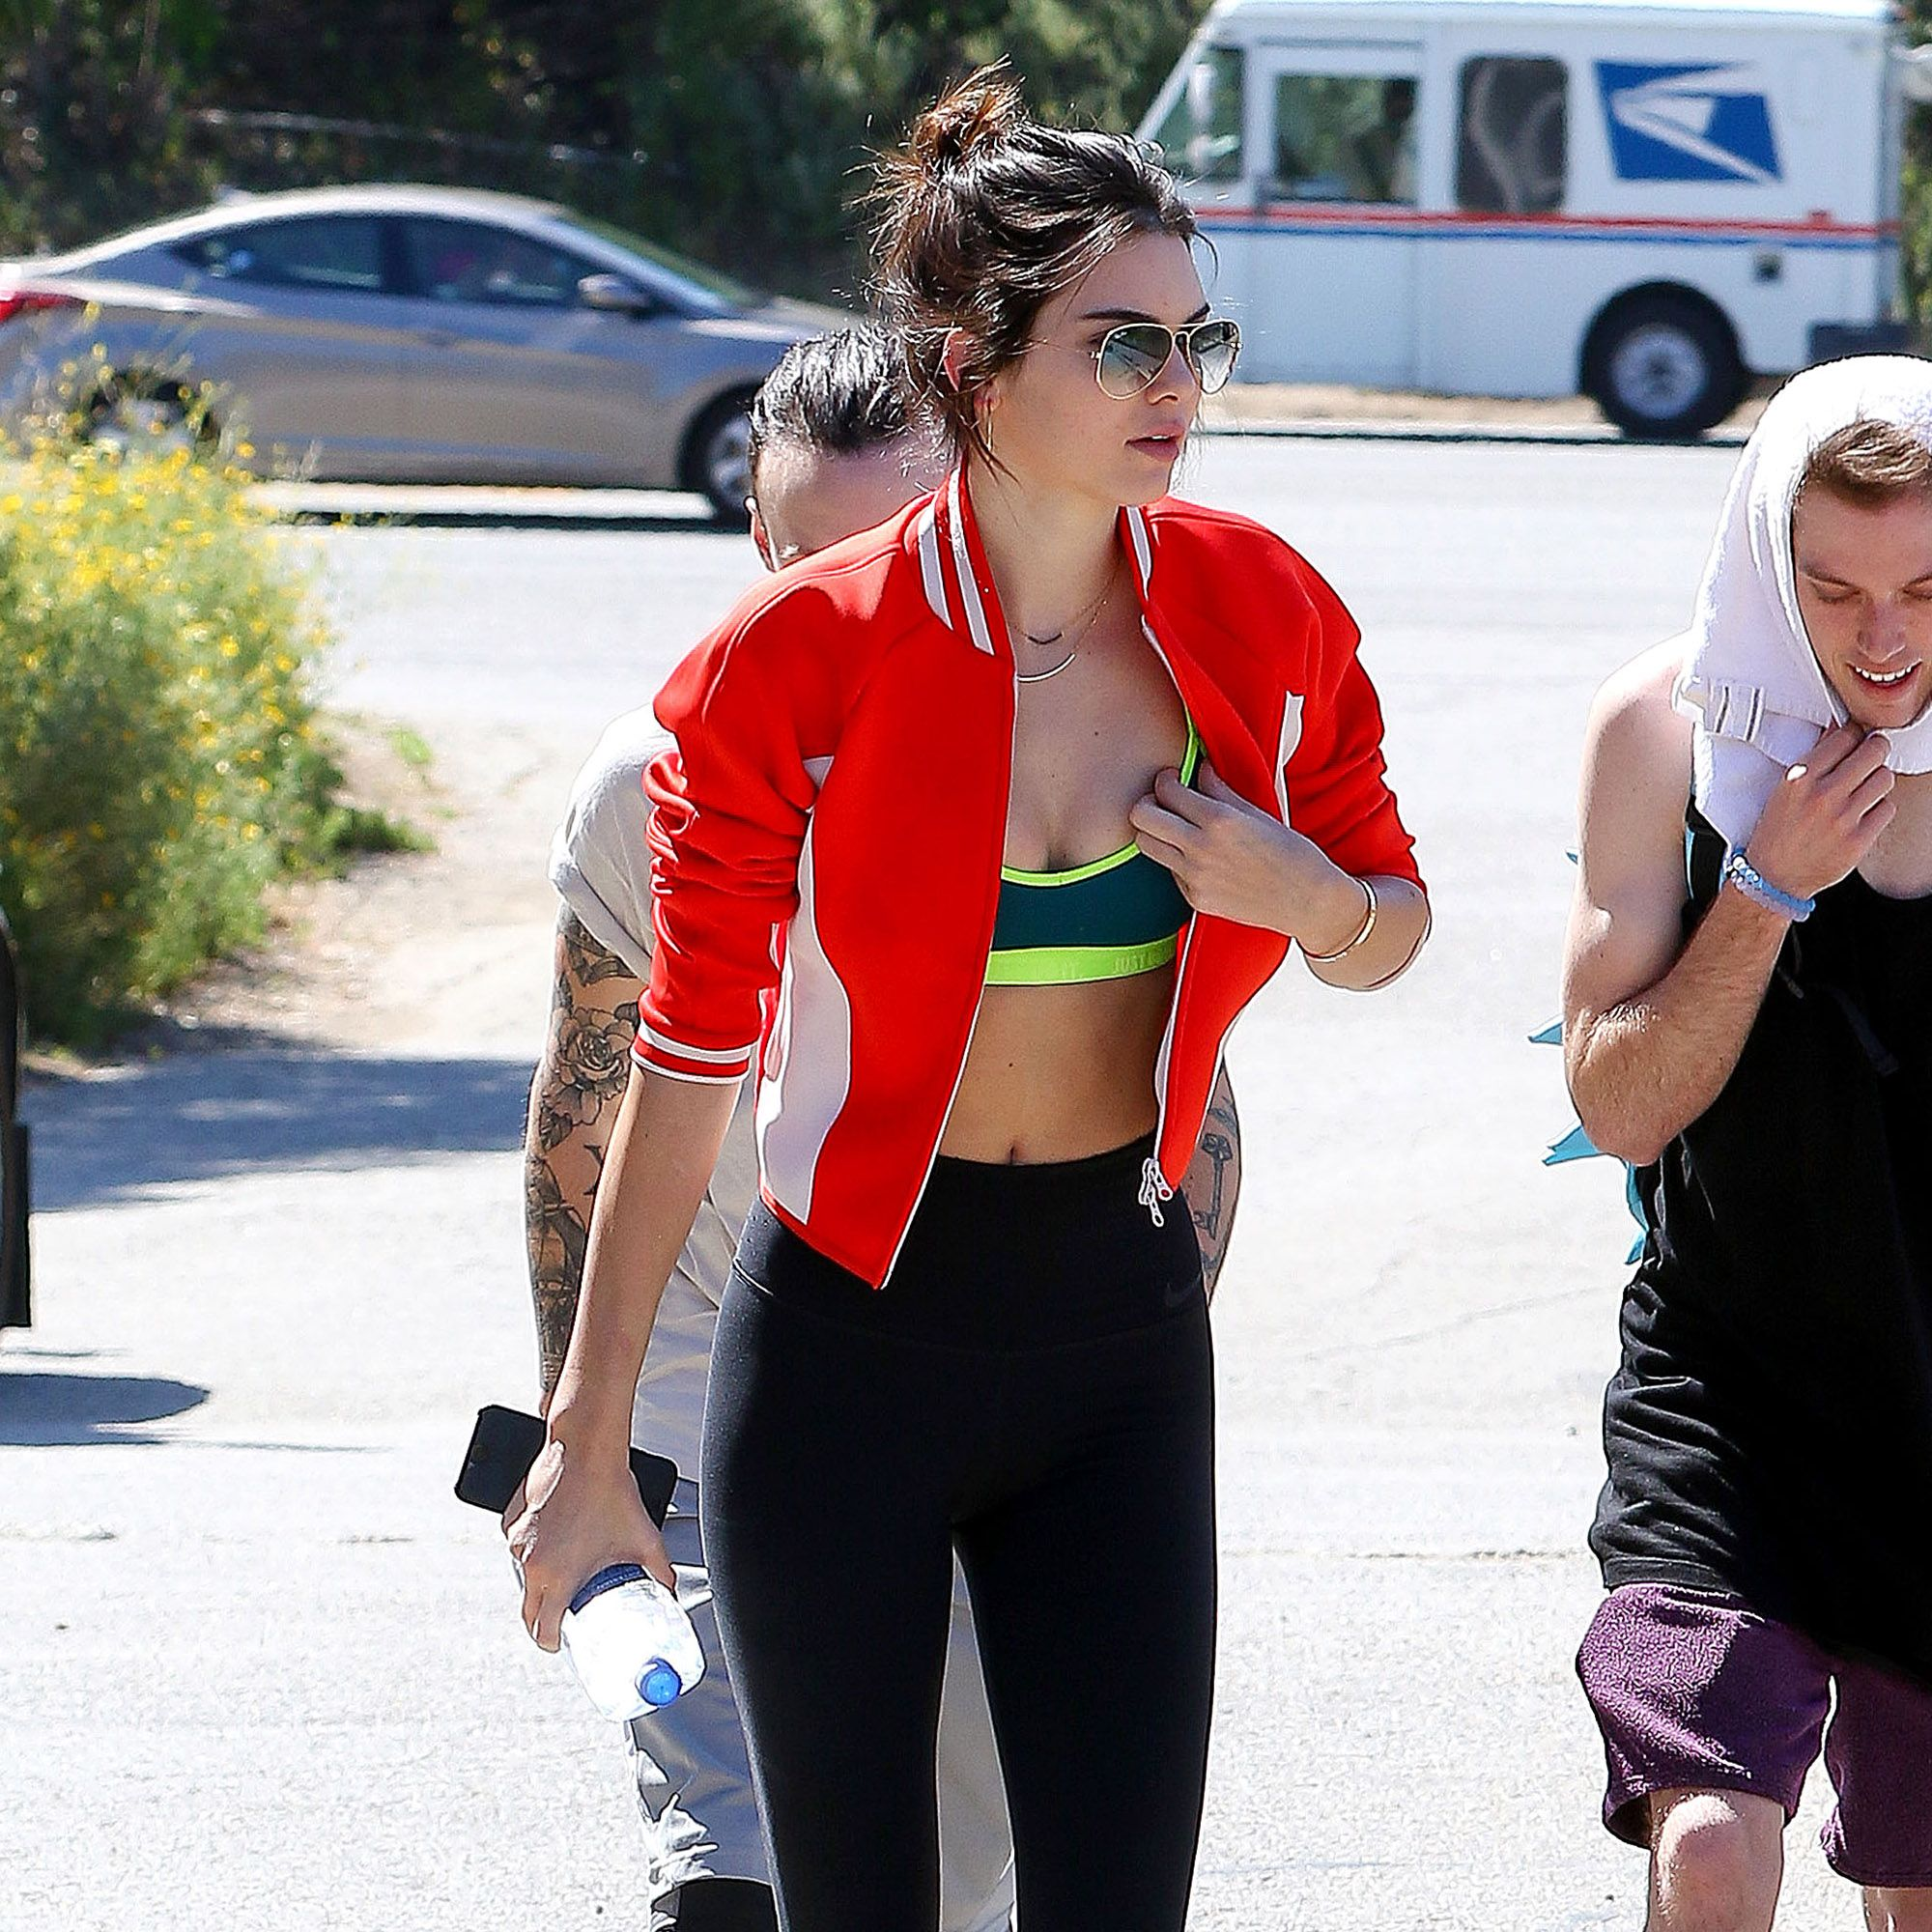 NO JUST JARED USAGE&lt&#x3B;BR/&gt&#x3B;&#xA&#x3B;*NO DAILY MAIL* Stunning Kendall Jenner flashes cleavage while out hiking with Jaden Smith and friends then shopping at the Malibu Country Mart.&#xA&#x3B;&lt&#x3B;P&gt&#x3B;&#xA&#x3B;Pictured: Kendall Jenner&#xA&#x3B;&lt&#x3B;B&gt&#x3B;Ref: SPL992634  050415  &lt&#x3B;/B&gt&#x3B;&lt&#x3B;BR/&gt&#x3B;&#xA&#x3B;Picture by: Splash News&lt&#x3B;BR/&gt&#x3B;&#xA&#x3B;&lt&#x3B;/P&gt&#x3B;&lt&#x3B;P&gt&#x3B;&#xA&#x3B;&lt&#x3B;B&gt&#x3B;Splash News and Pictures&lt&#x3B;/B&gt&#x3B;&lt&#x3B;BR/&gt&#x3B;&#xA&#x3B;Los Angeles:310-821-2666&lt&#x3B;BR/&gt&#x3B;&#xA&#x3B;New York:212-619-2666&lt&#x3B;BR/&gt&#x3B;&#xA&#x3B;London:870-934-2666&lt&#x3B;BR/&gt&#x3B;&#xA&#x3B;photodesk@splashnews.com&lt&#x3B;BR/&gt&#x3B;&#xA&#x3B;&lt&#x3B;/P&gt&#x3B;